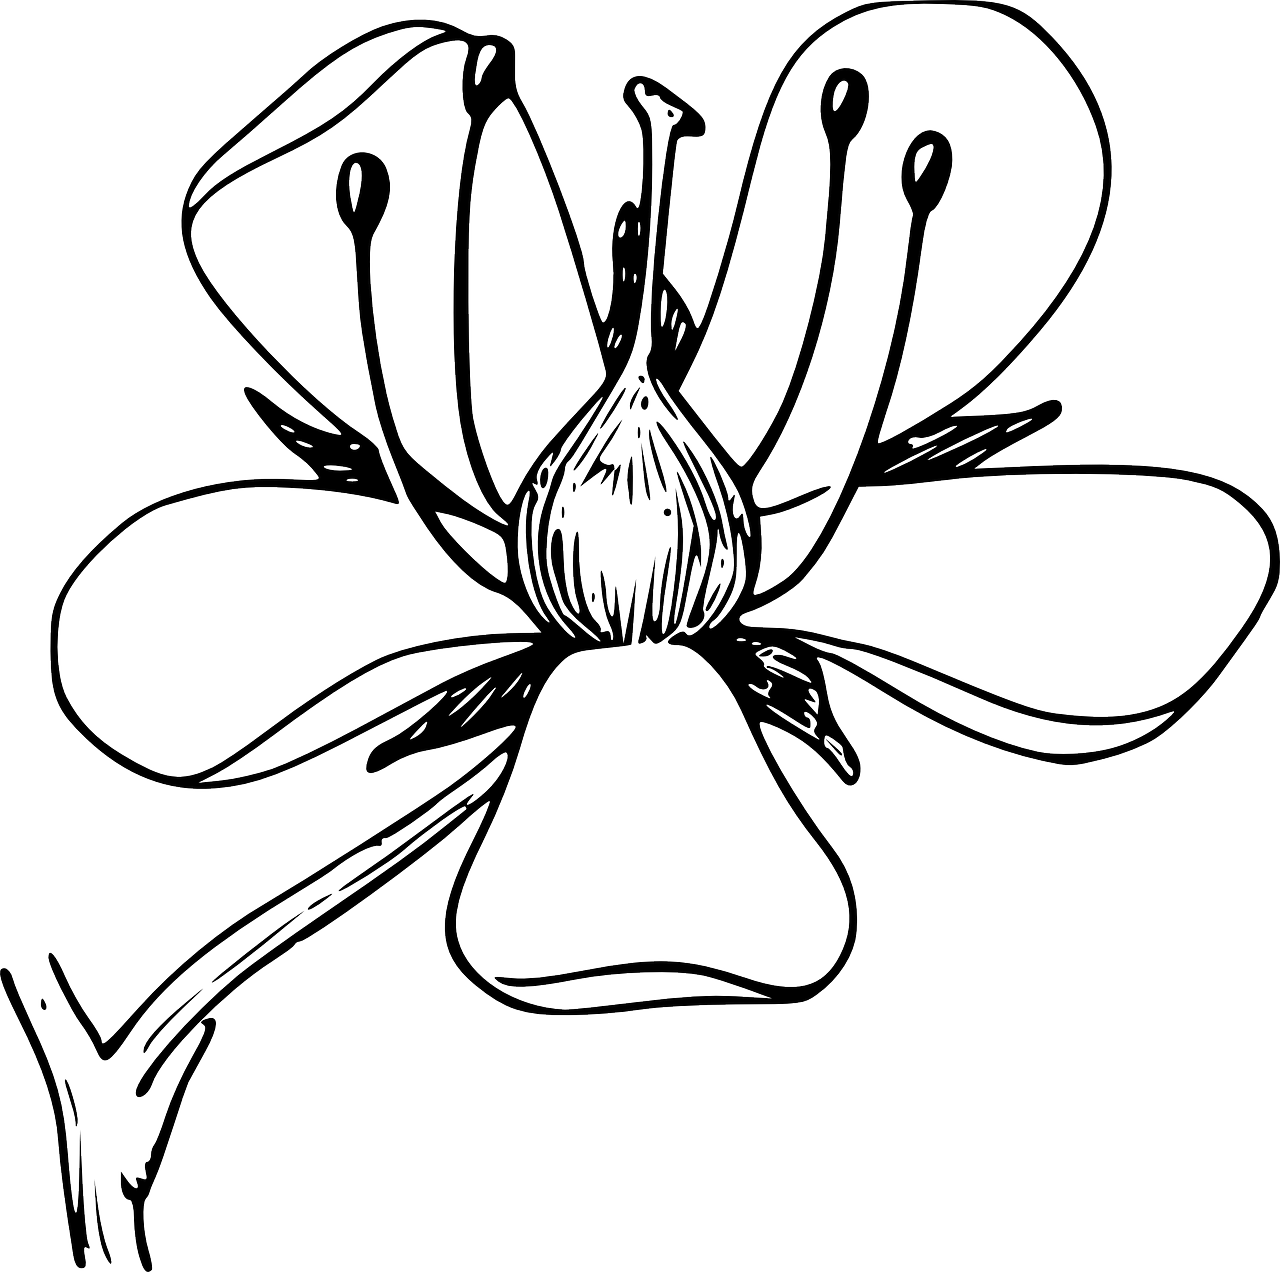 Wildflowers drawing - coloring pages free for kids 8